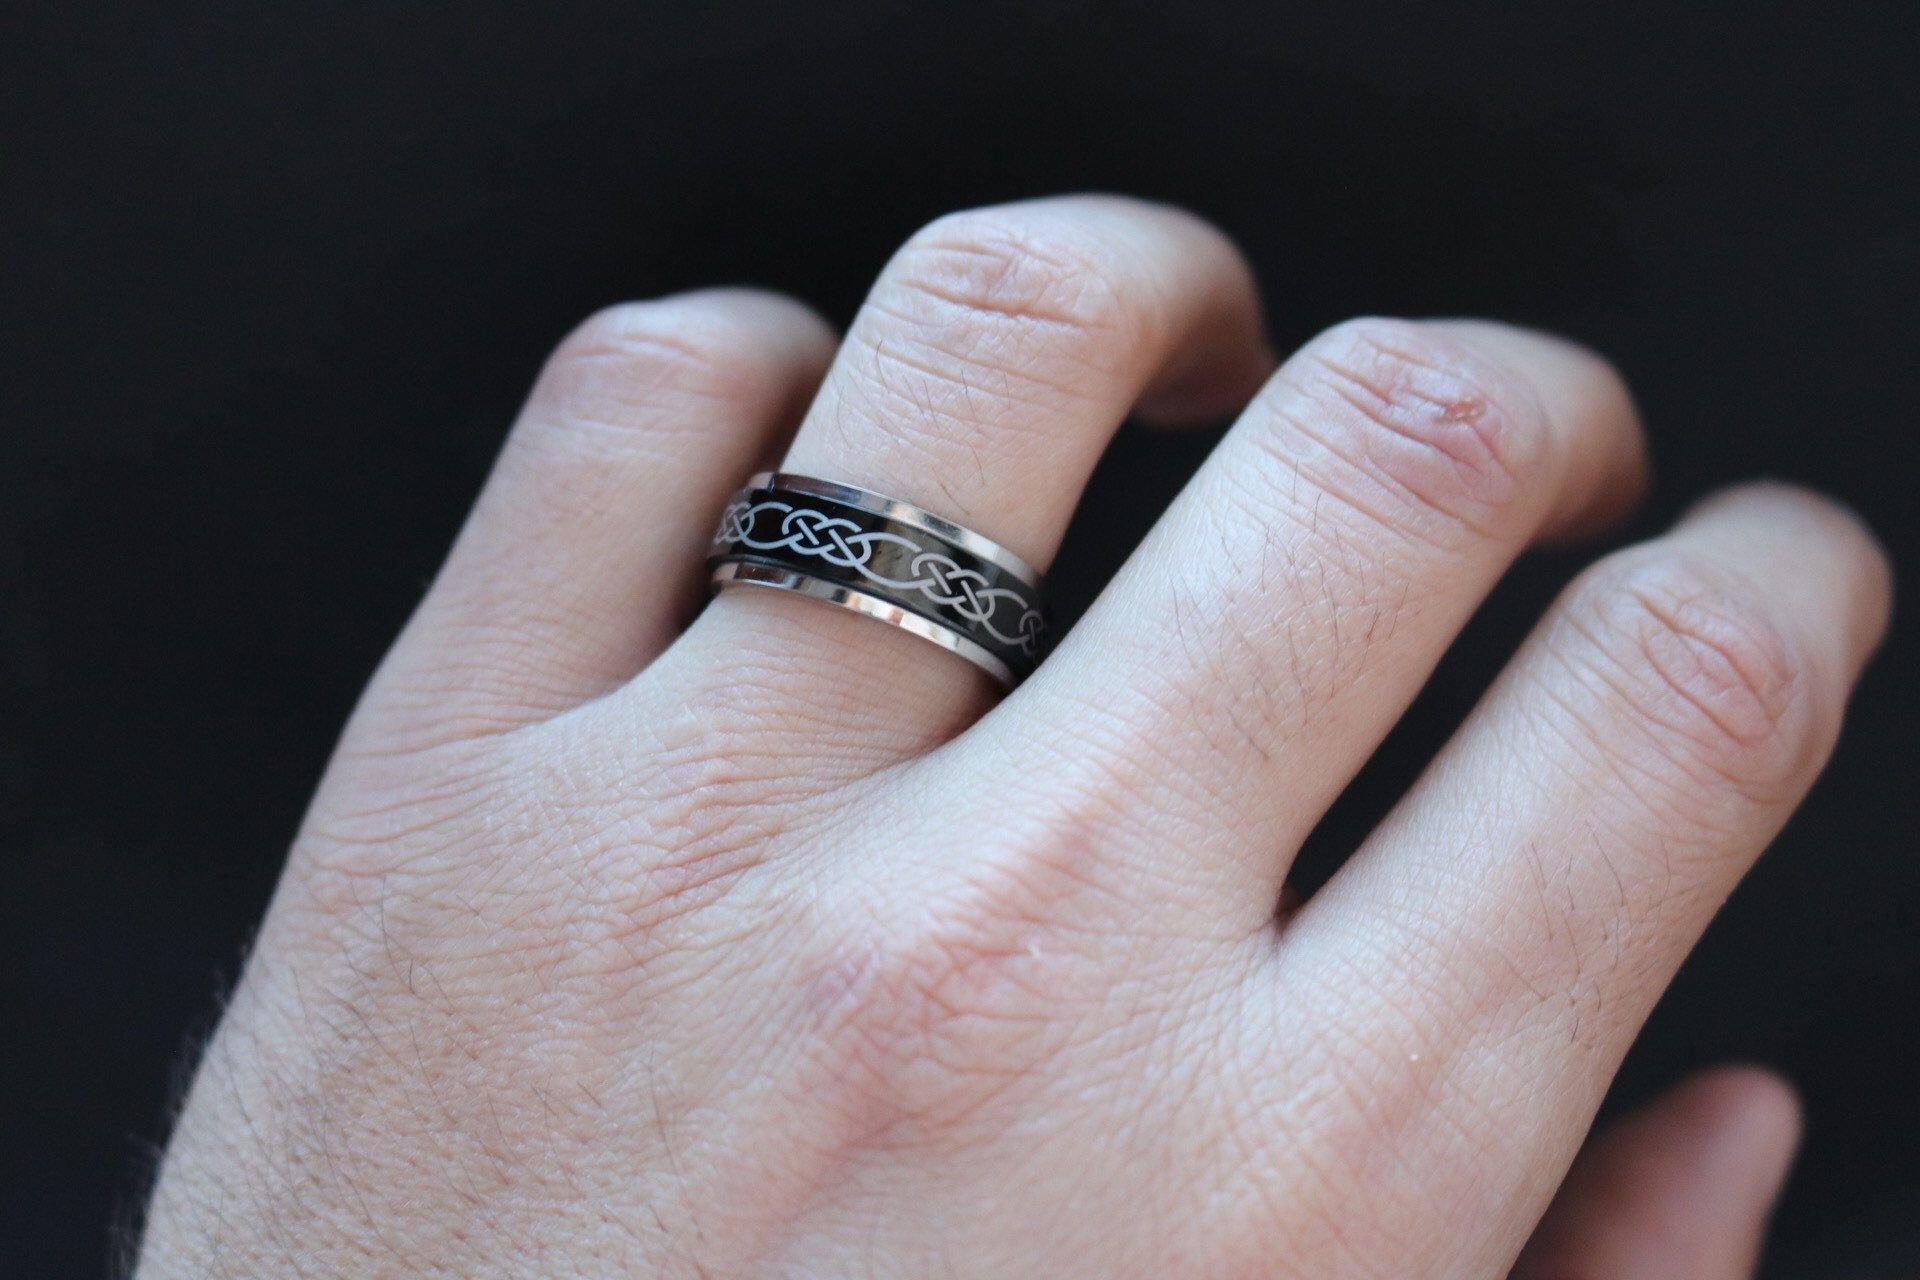 """""""This is beautiful stainless steel band with a Celtic Knot design. The band is perfect for showcasing the Celtic symbol of Eternity. Since this ring is unisex and has a great variance in ring sizes, it is the perfect option for matching couples rings. We offer two rings bought together with a £5 discount. If you would like a set of two matching rings in different sizes, please select \""""Set of 2 Rings\"""" and select your size. Since you can only select one size at a time, please put a note at check"""